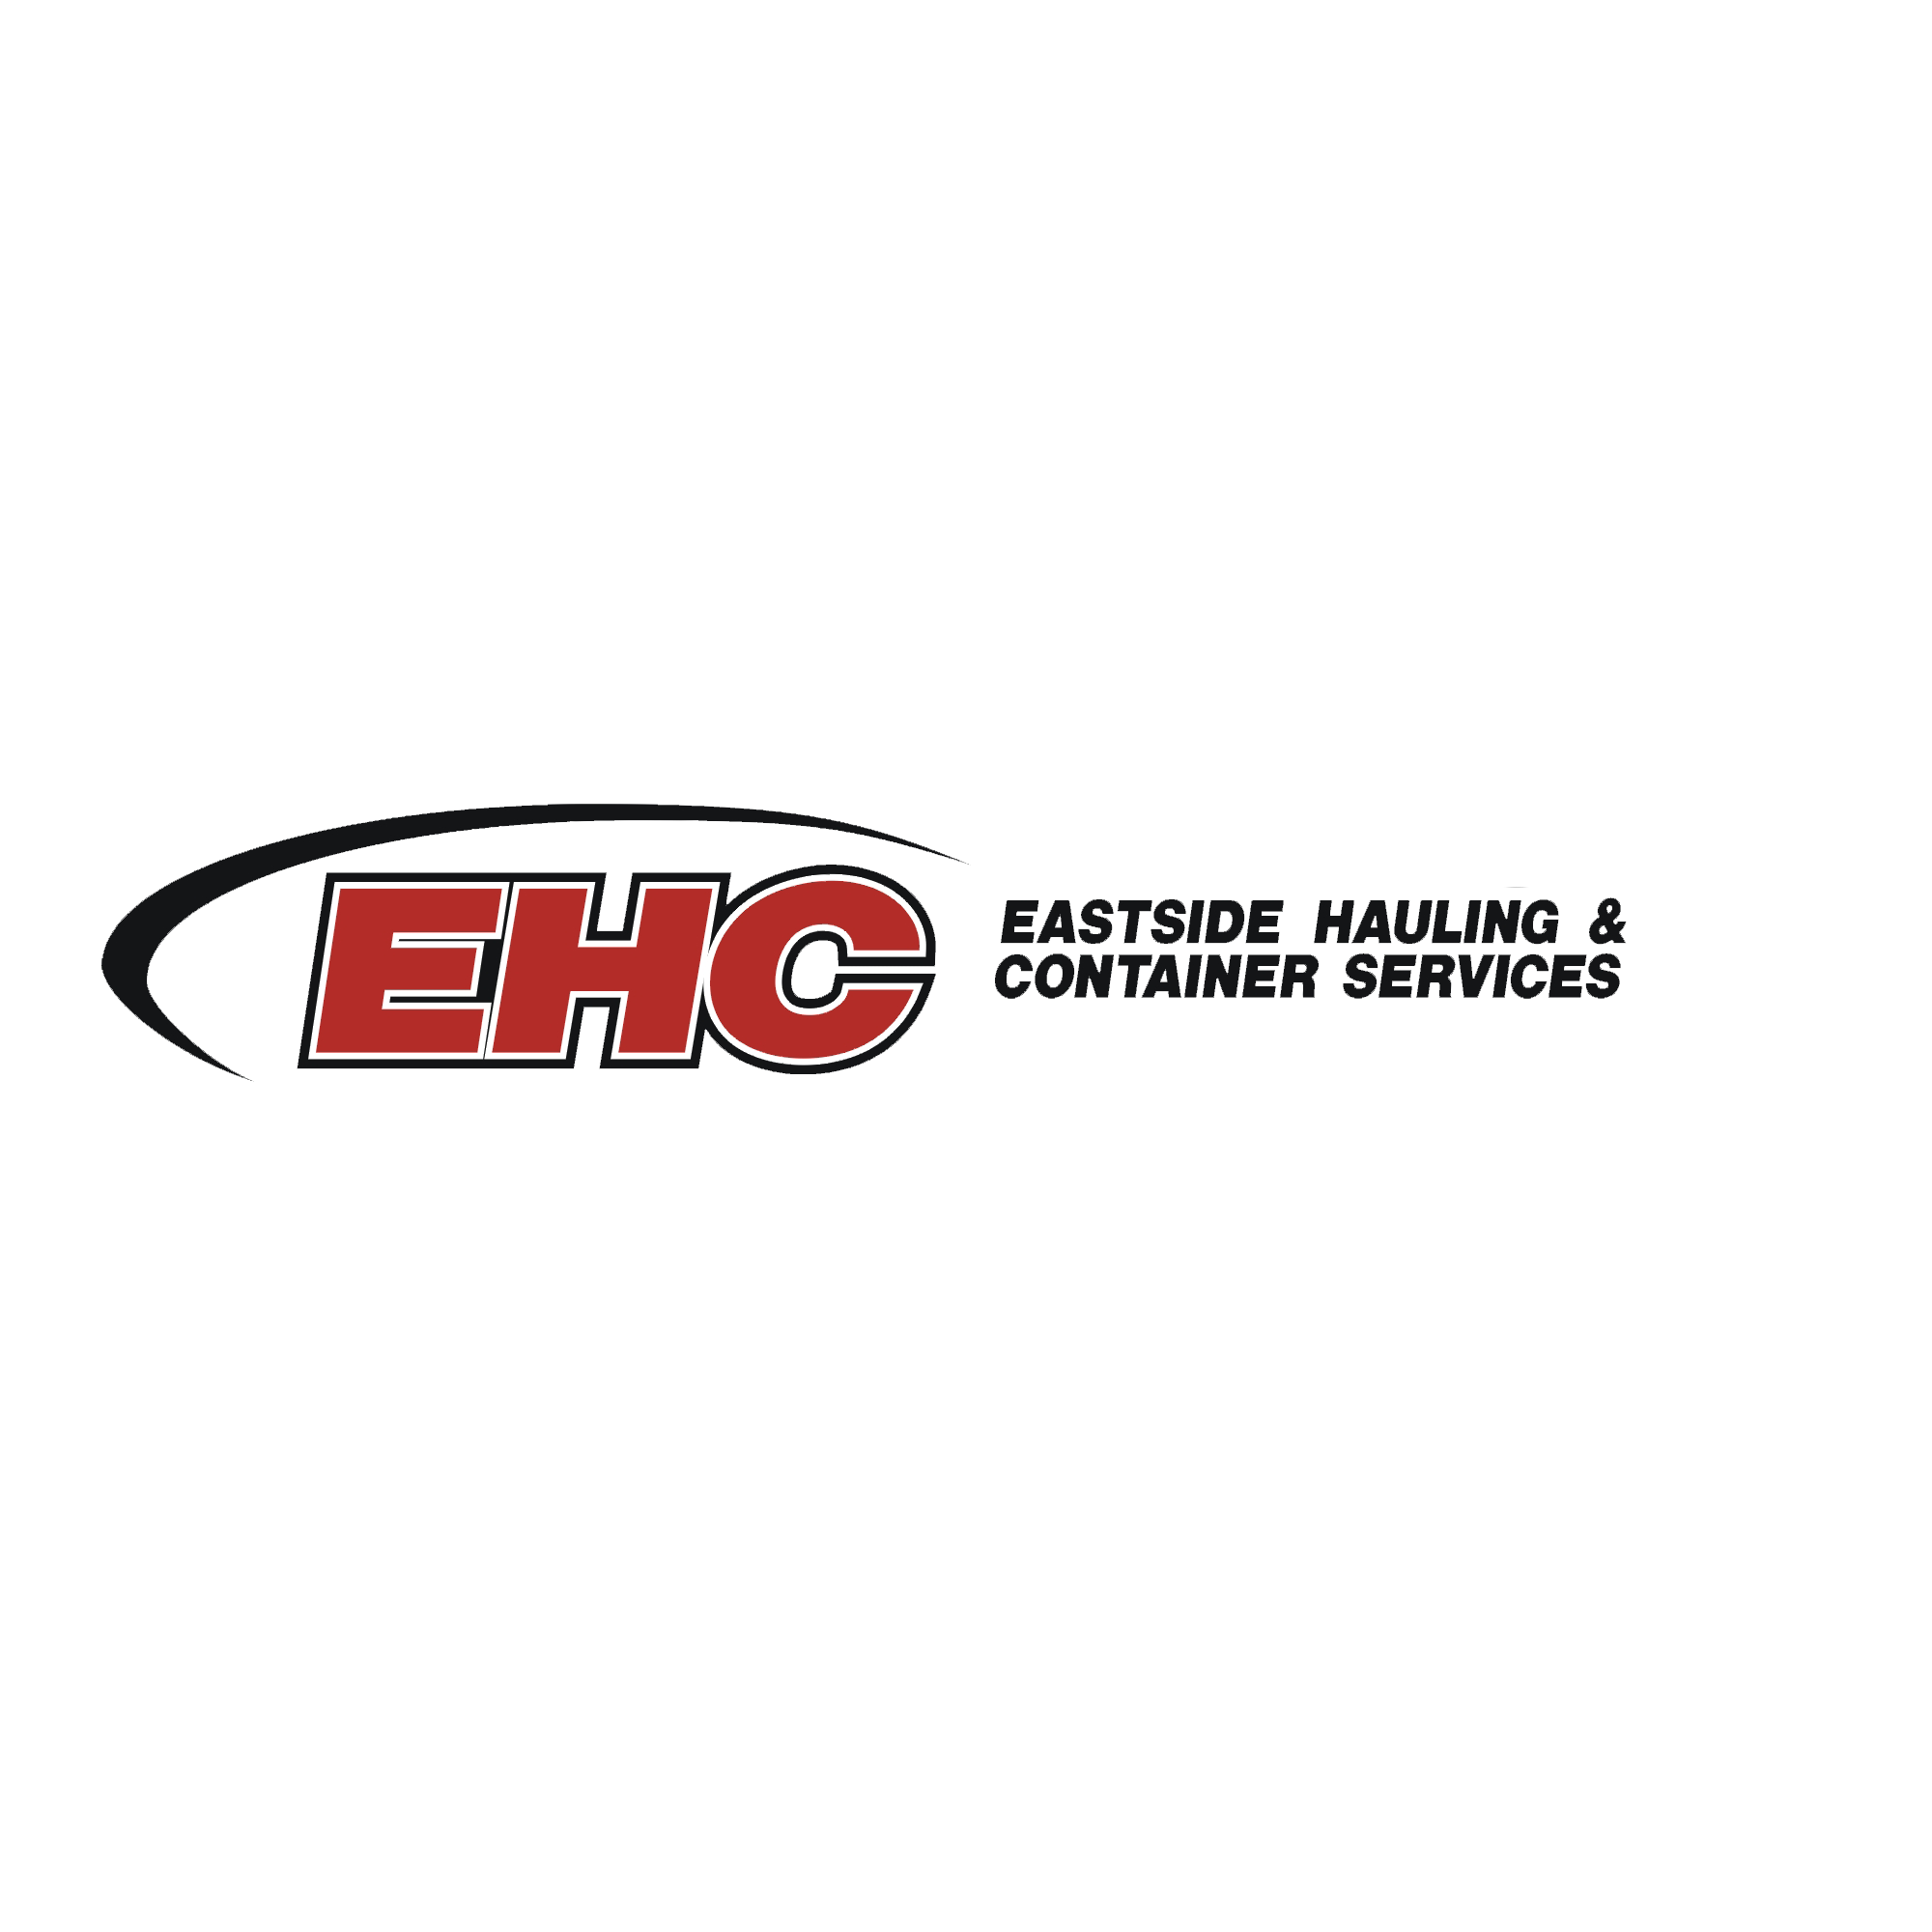 Eastside Hauling and Container Services - Bellevue, WA - House Cleaning Services